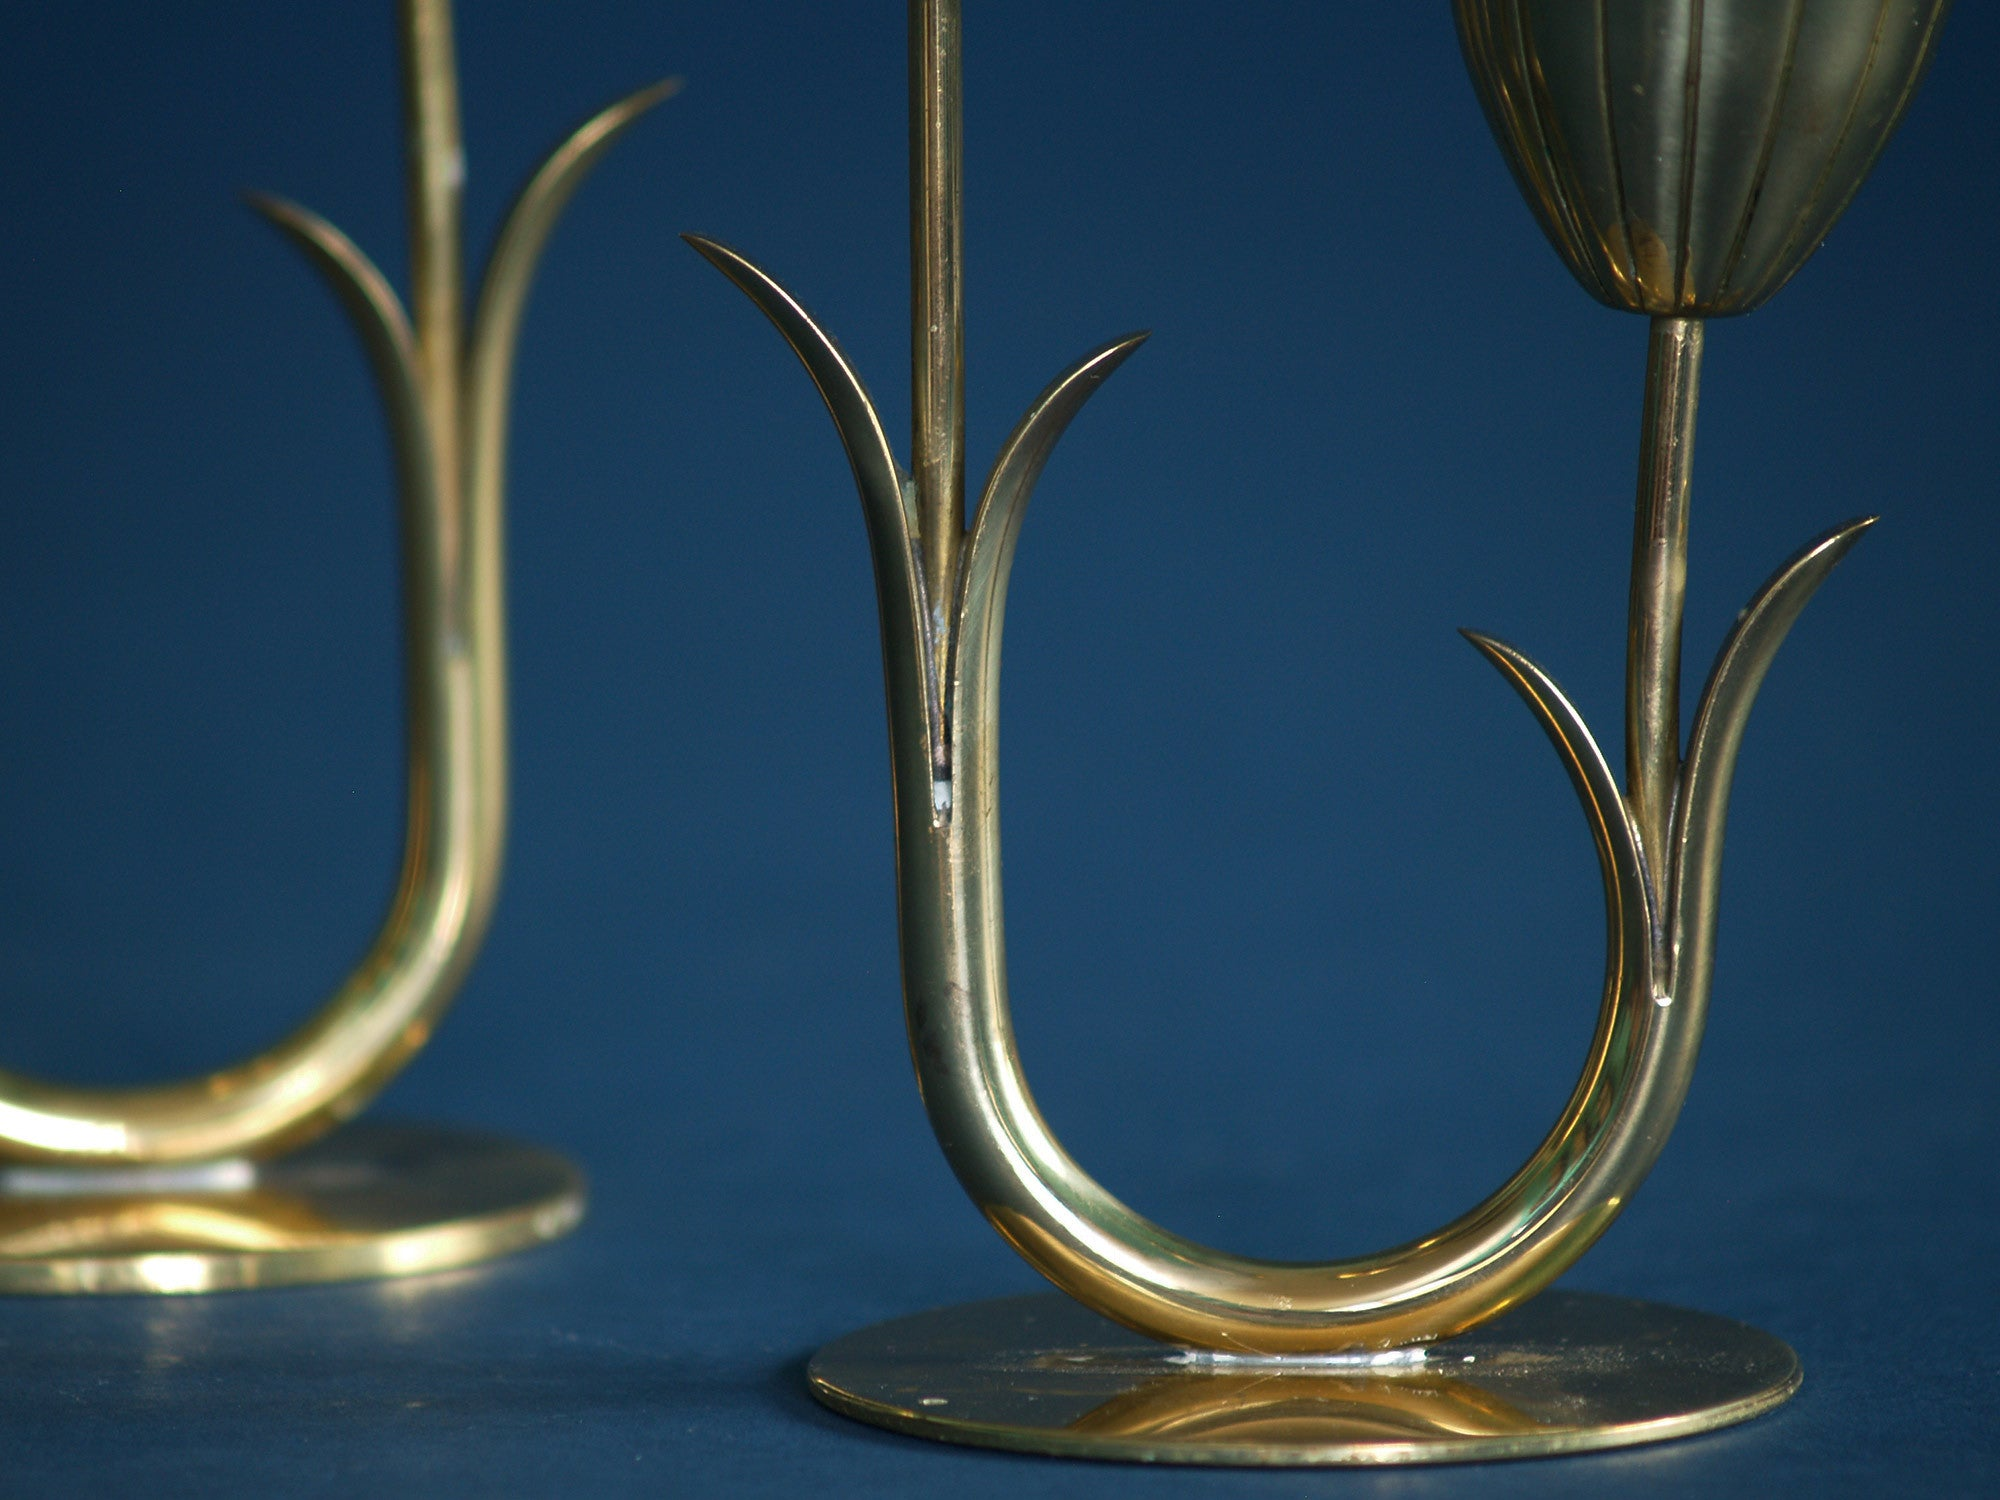 Paire de flambeaux de Gunnar Ander & Ystad Metall, Suède (années 1940)..Pair of candle holders by Gunnar Ander & Ystad Metall, Sweden (Circa 1940)